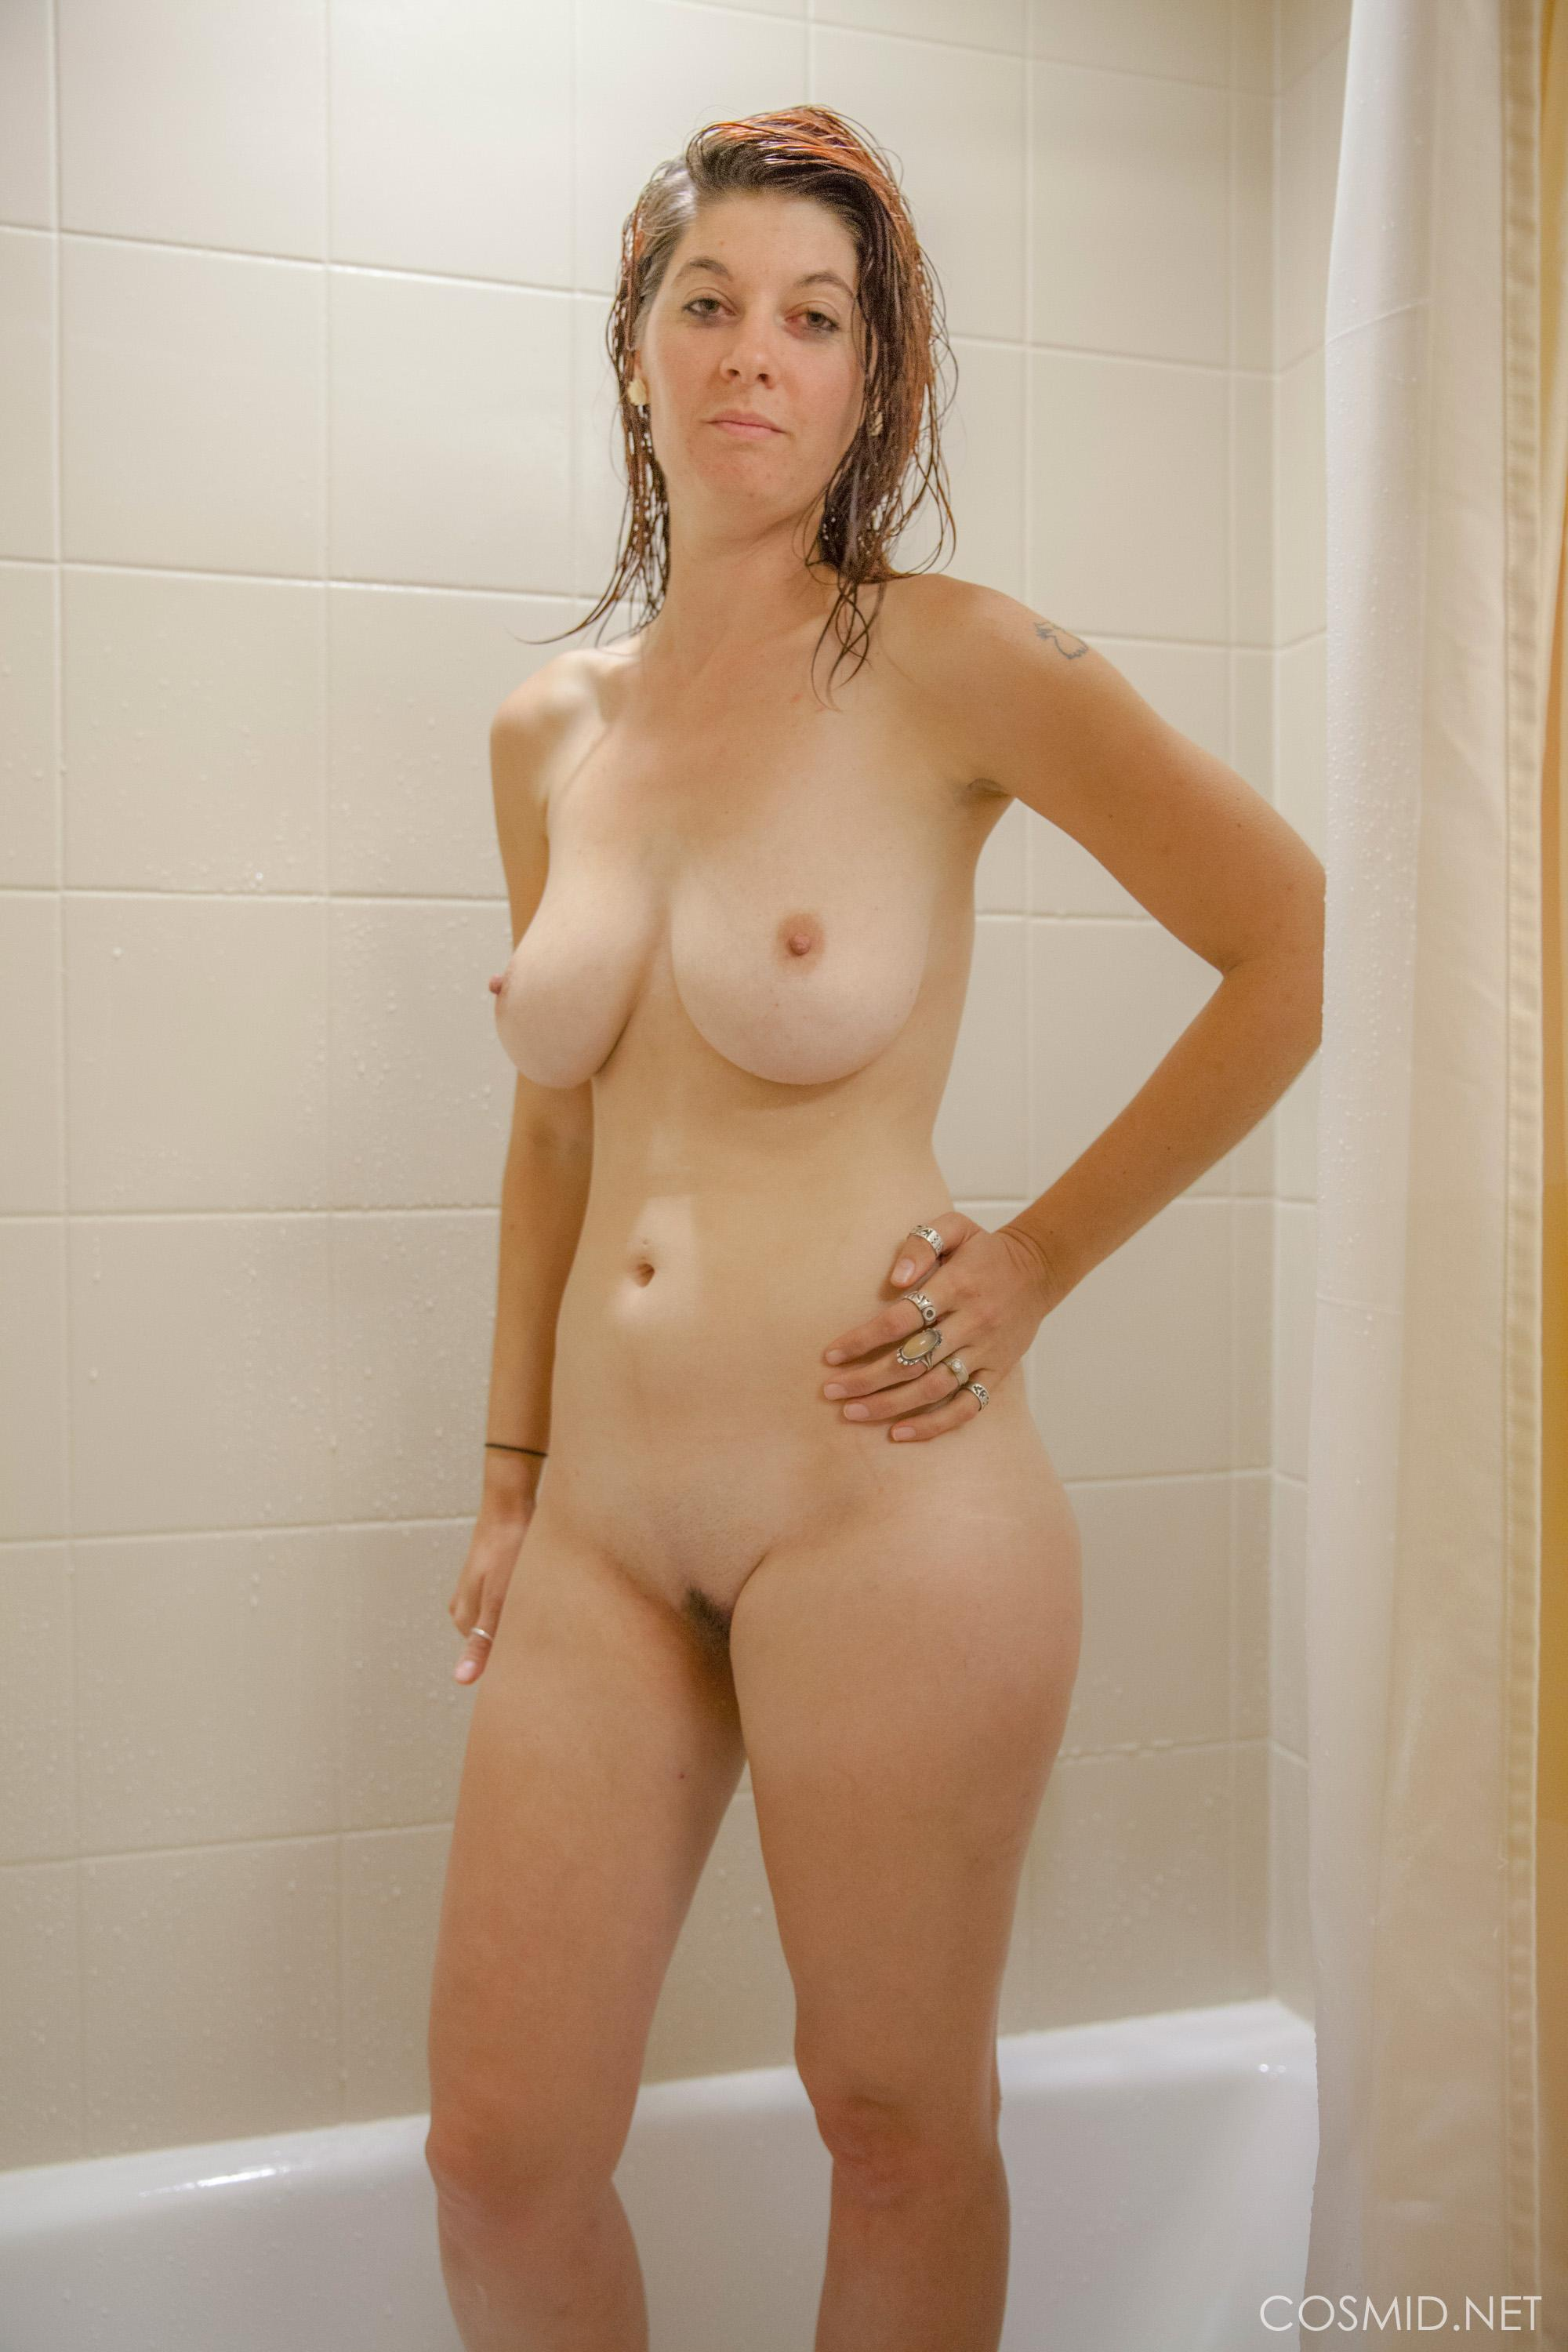 For cherry in shower naked pity